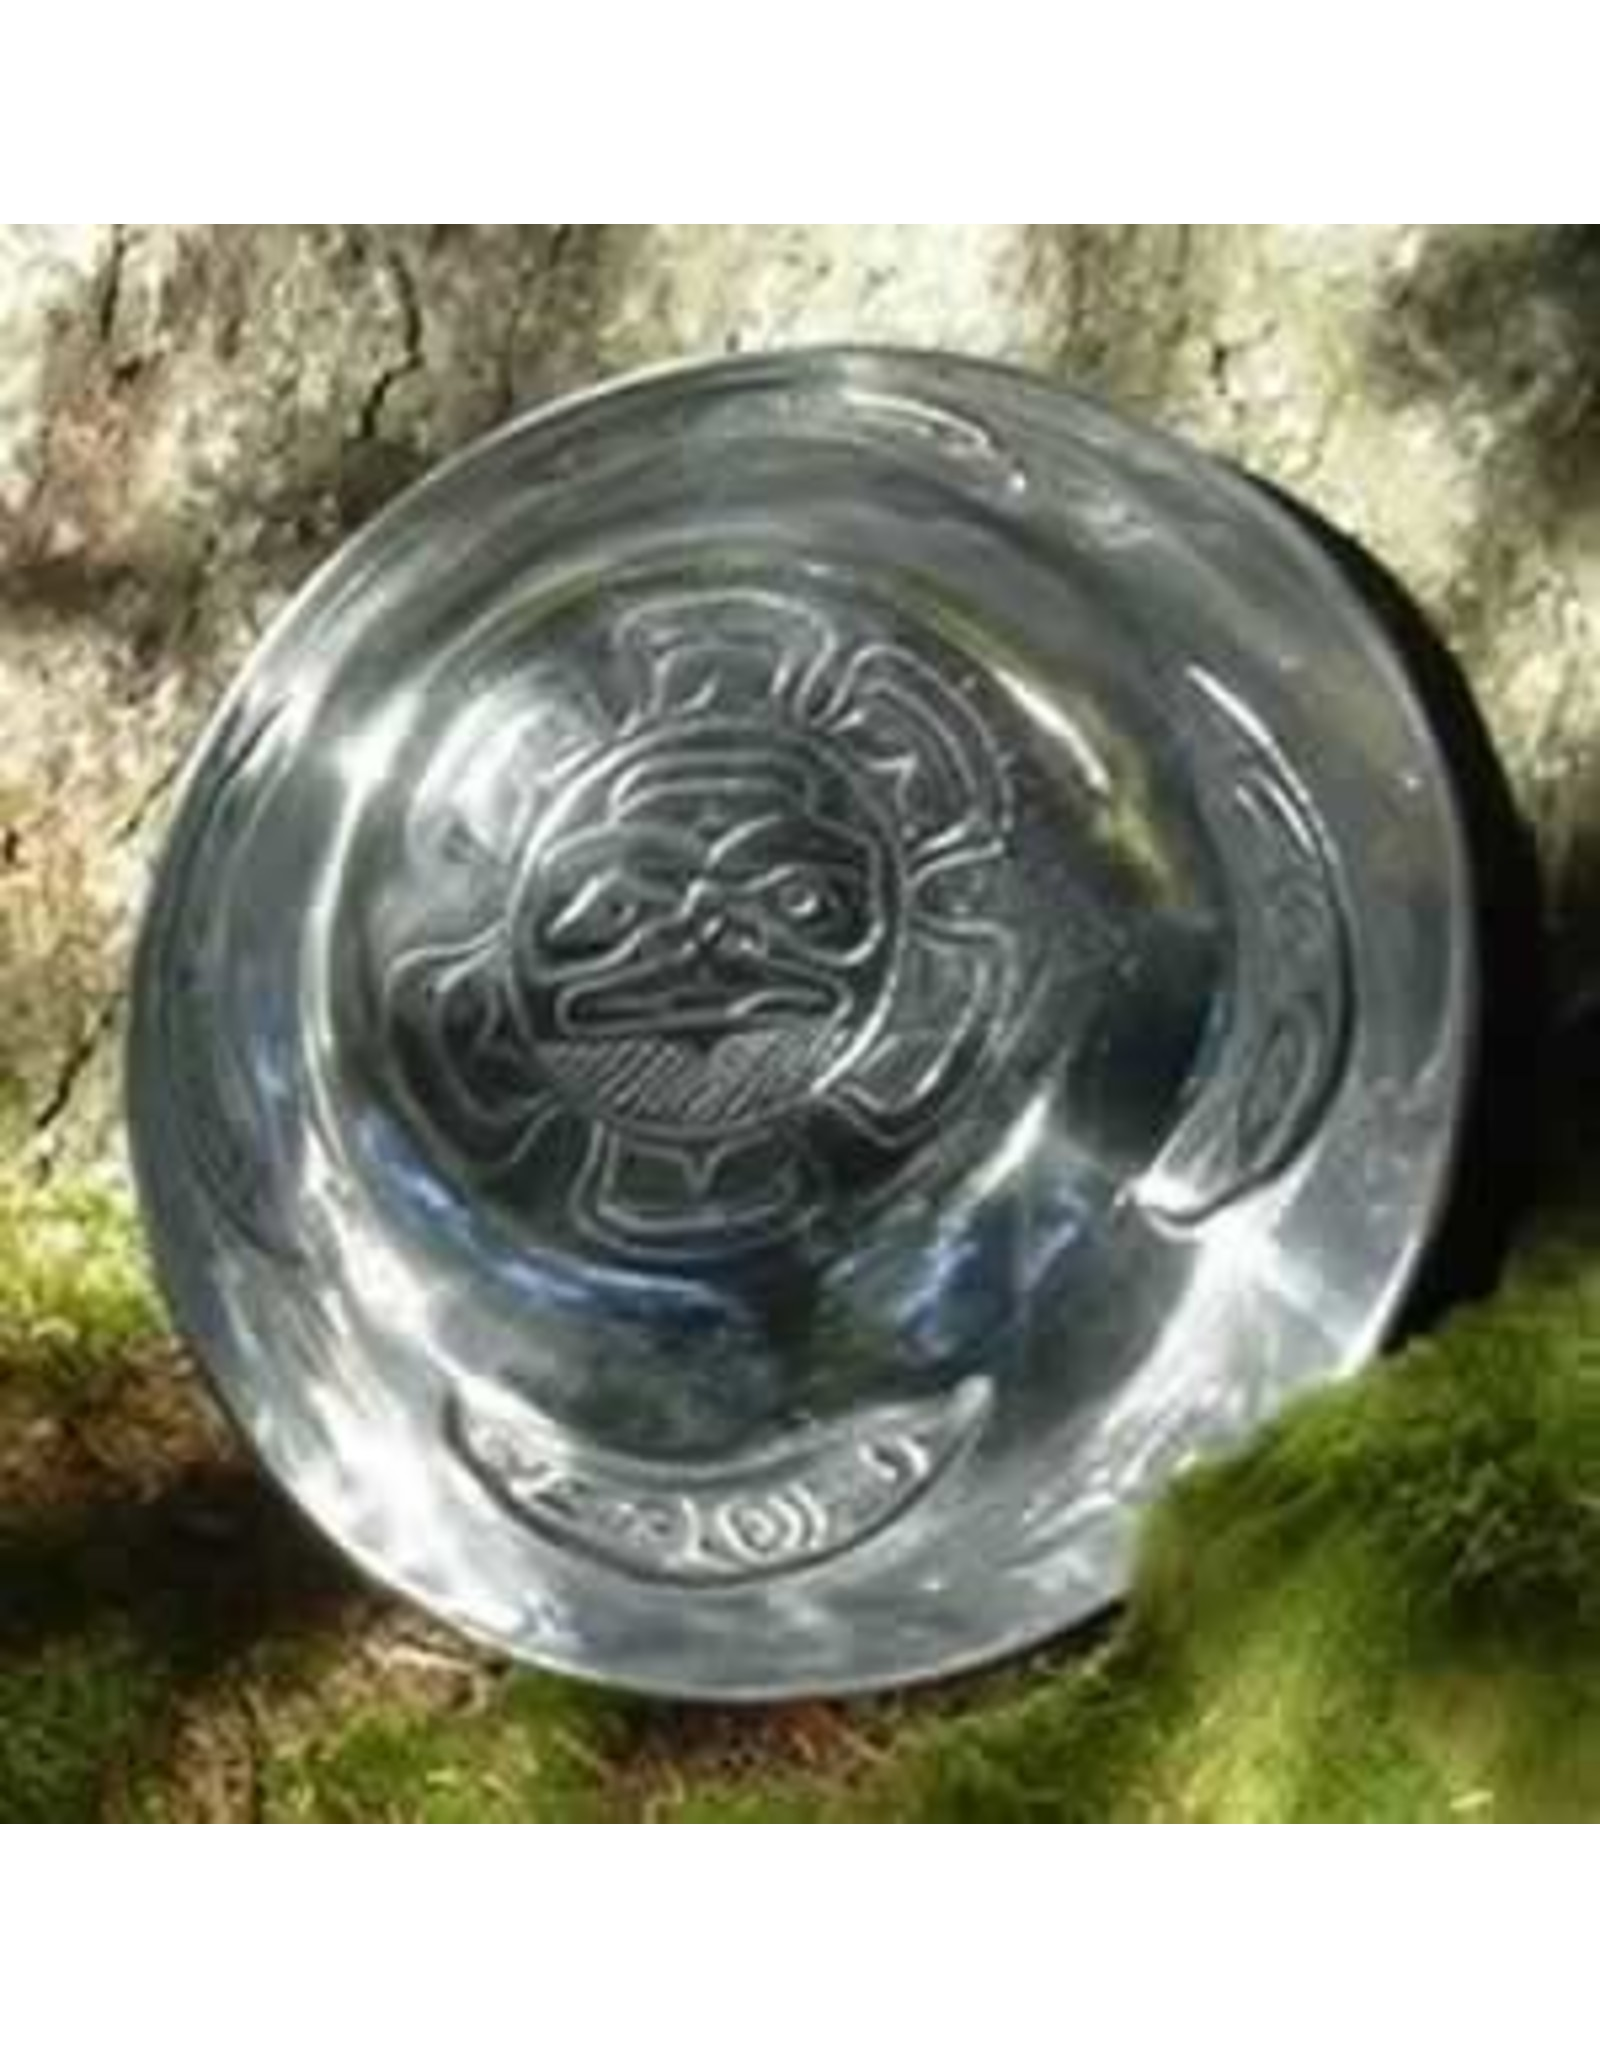 Northwest Pewter Northwest Pewter Spirit Salad Bowl